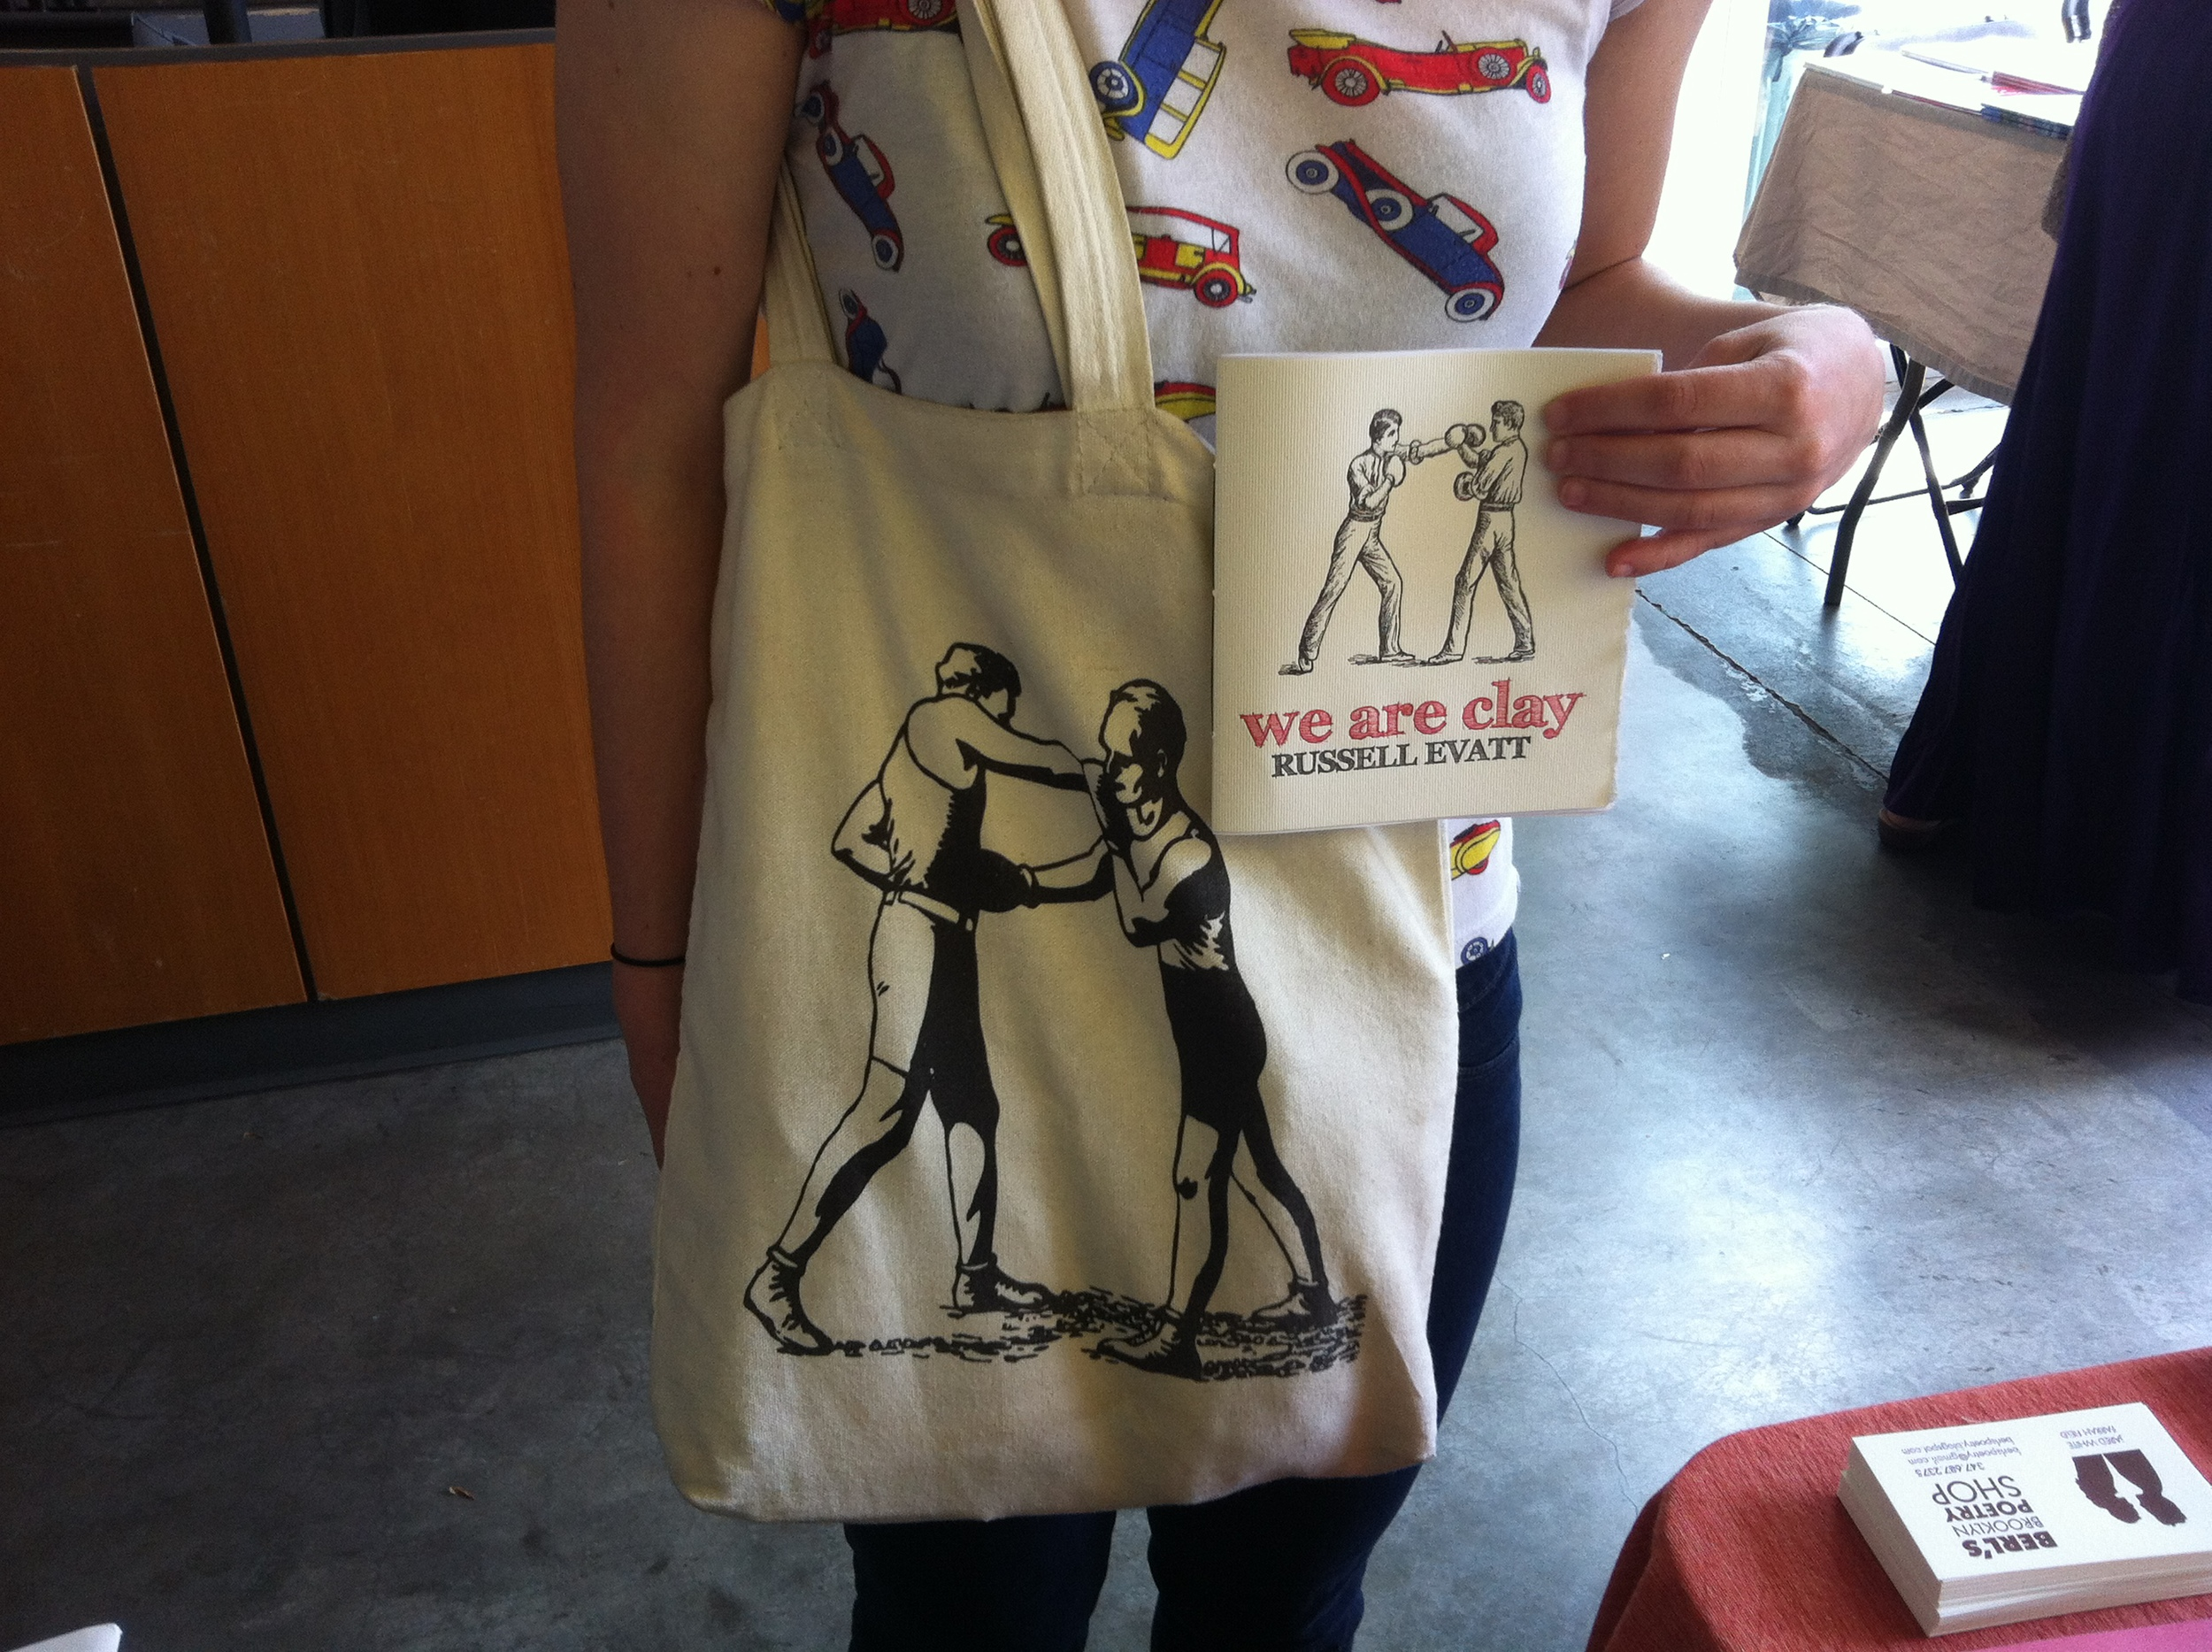 A tote at the Brooklyn Flea with an uncanny resemblance to WE ARE CLAY by Russell Evatt (Epiphany Editions